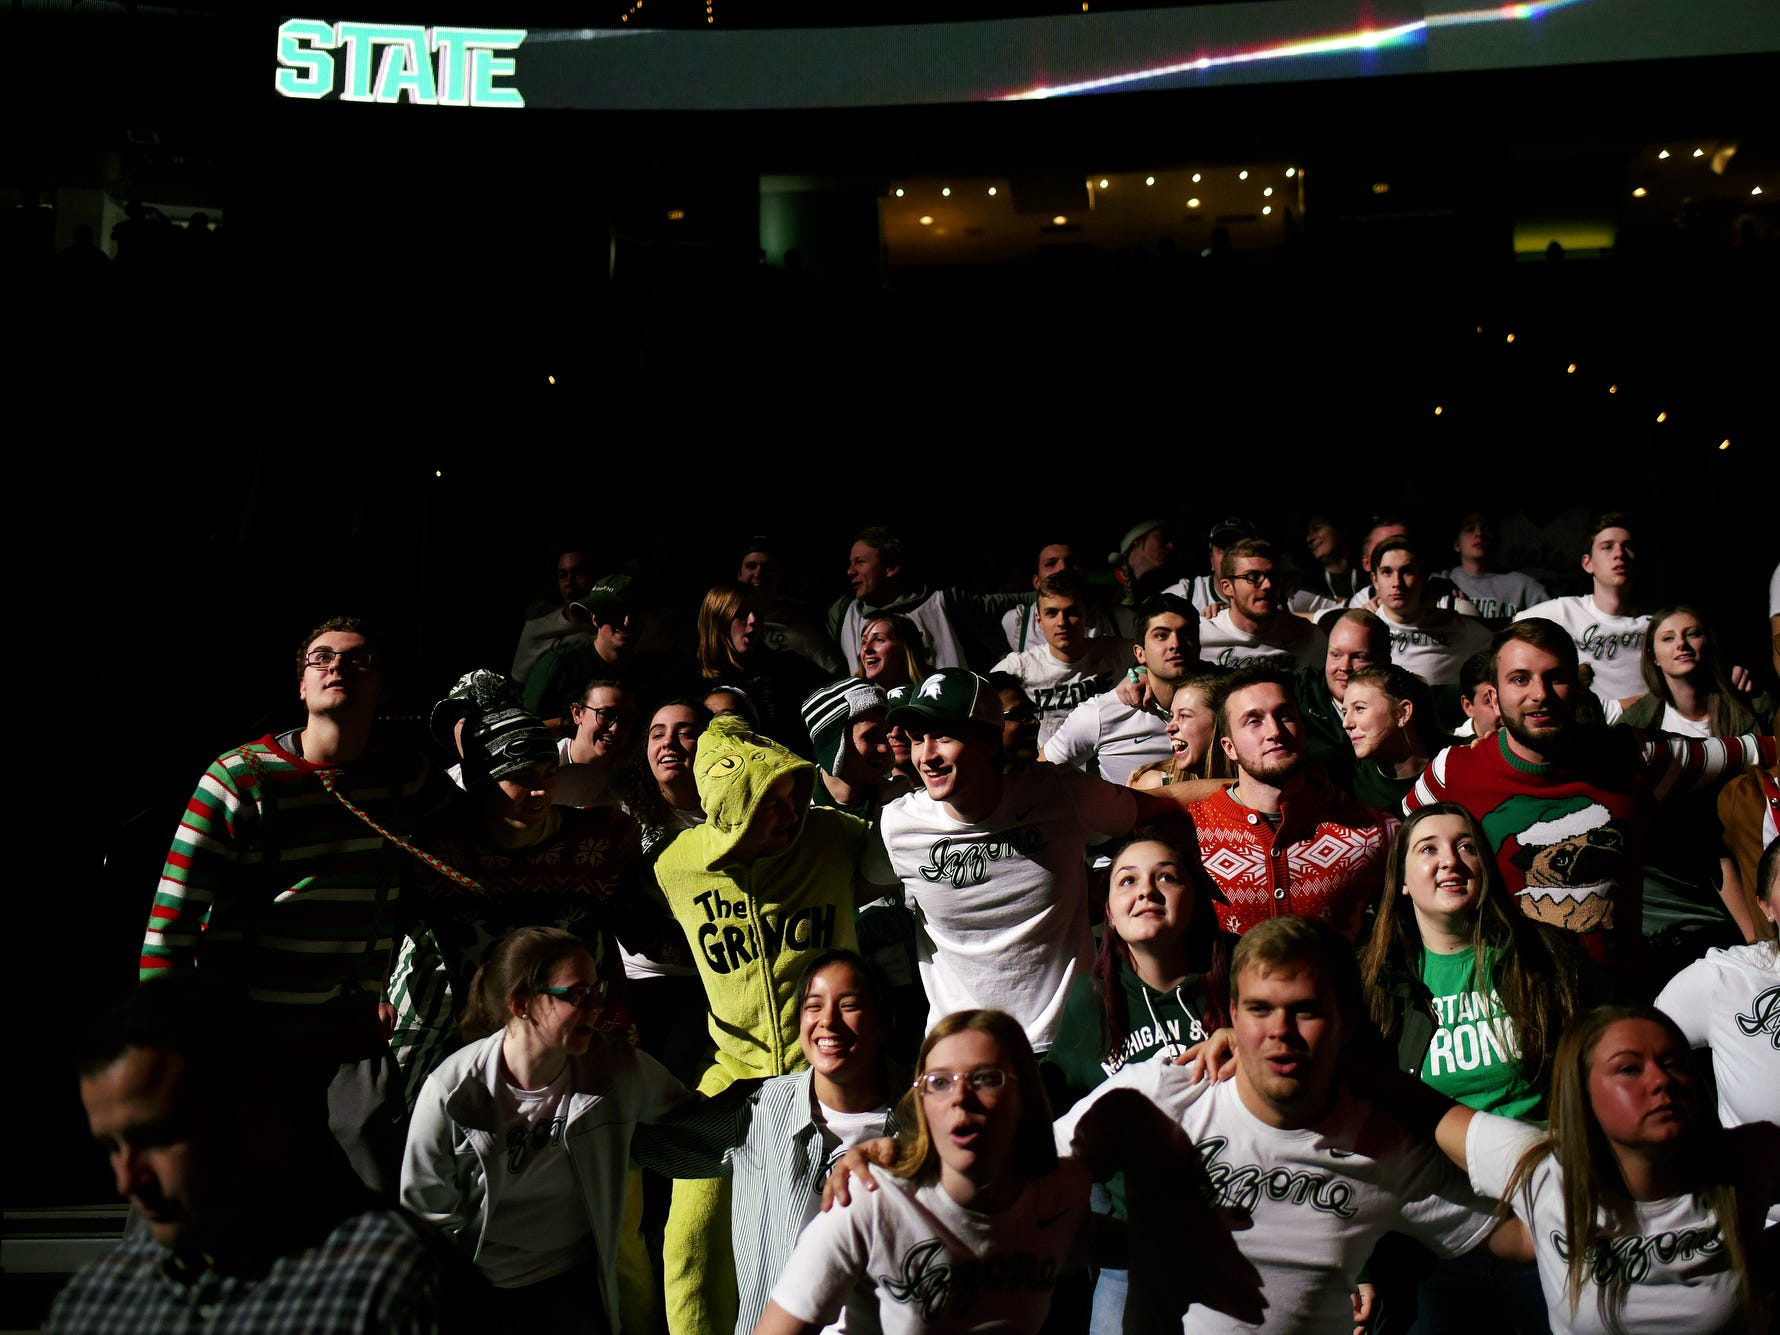 Michigan State fans cheer during player introductions before the Spartans game against Iowa on Monday, Dec. 3, 2018, at the Breslin Center in East Lansing. Michigan State beat Iowa 90-68.